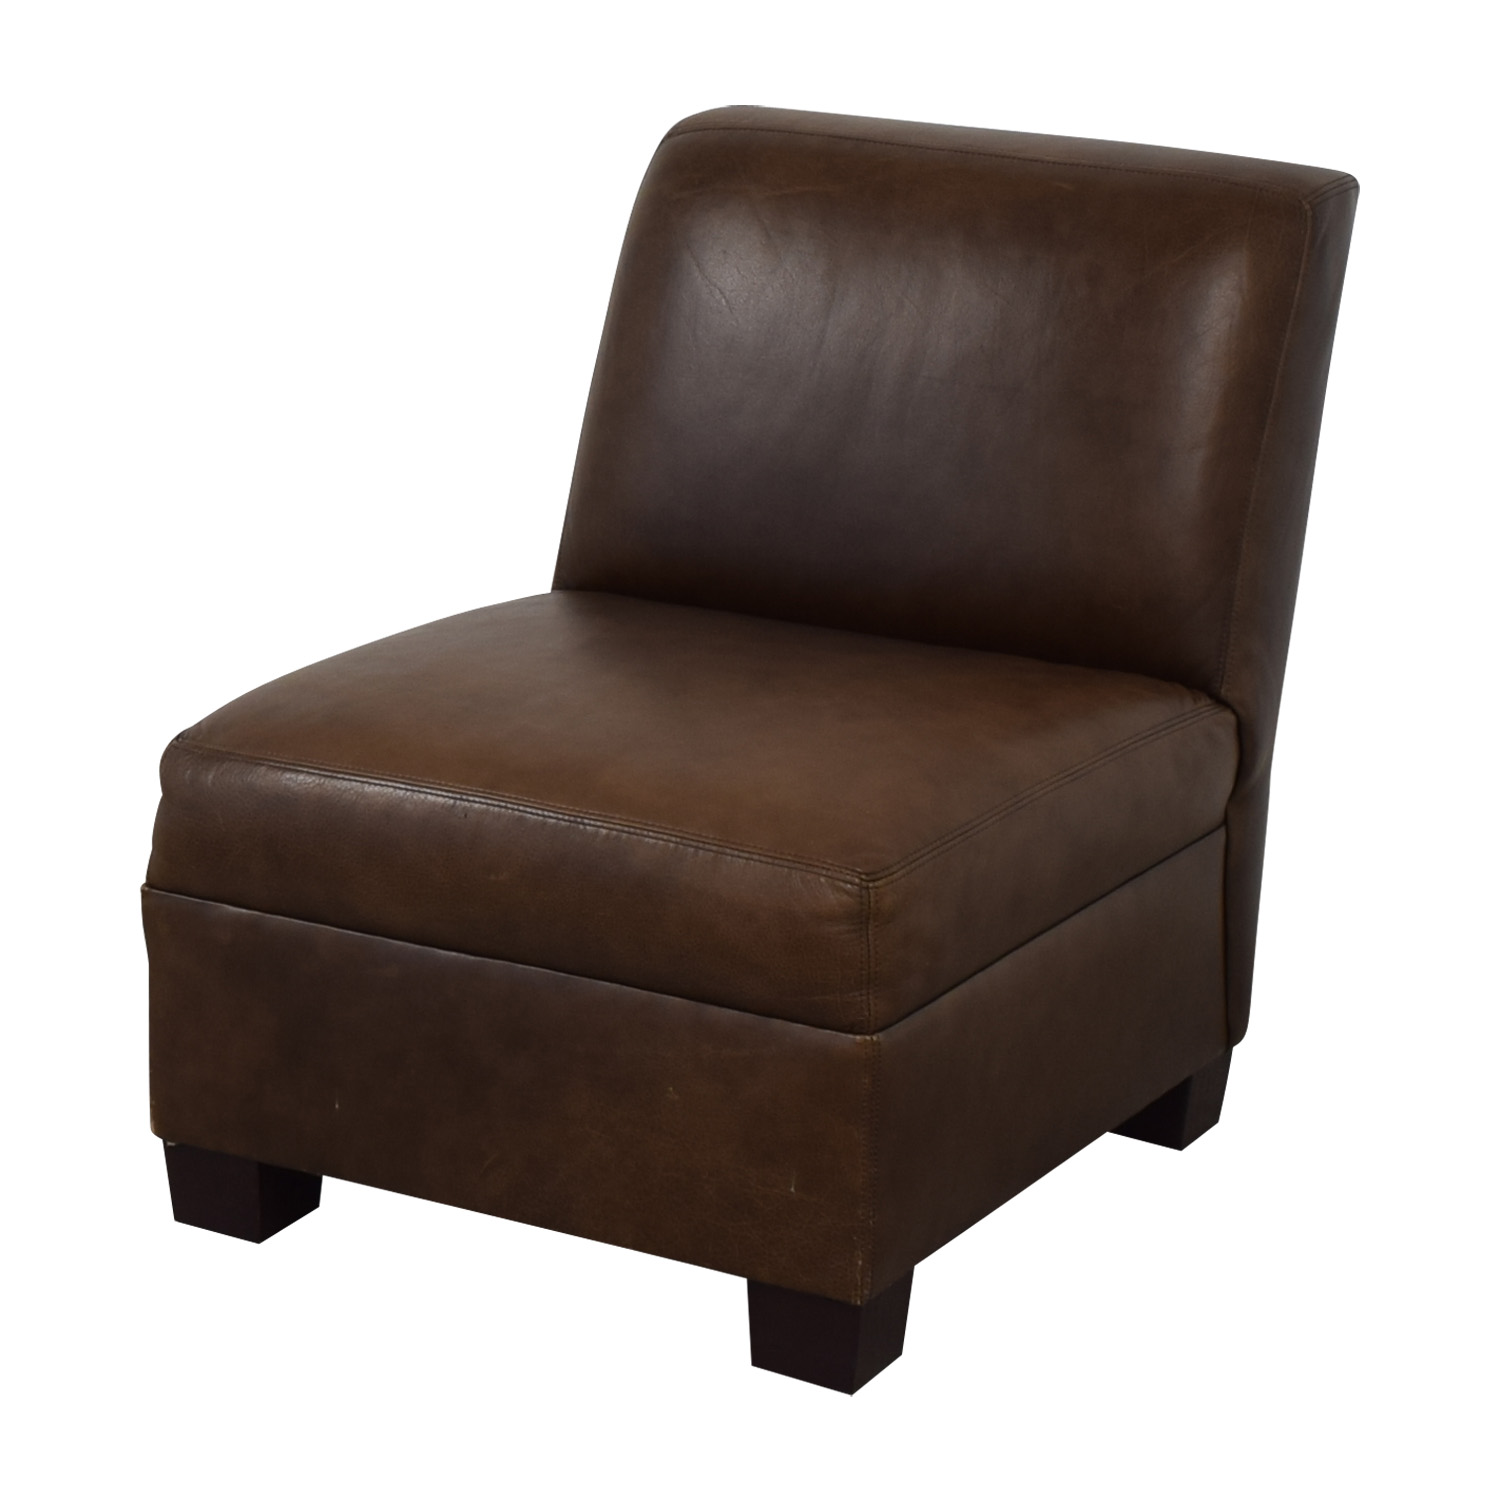 Pottery Barn Pottery Barn Leather Lounge Chair for sale